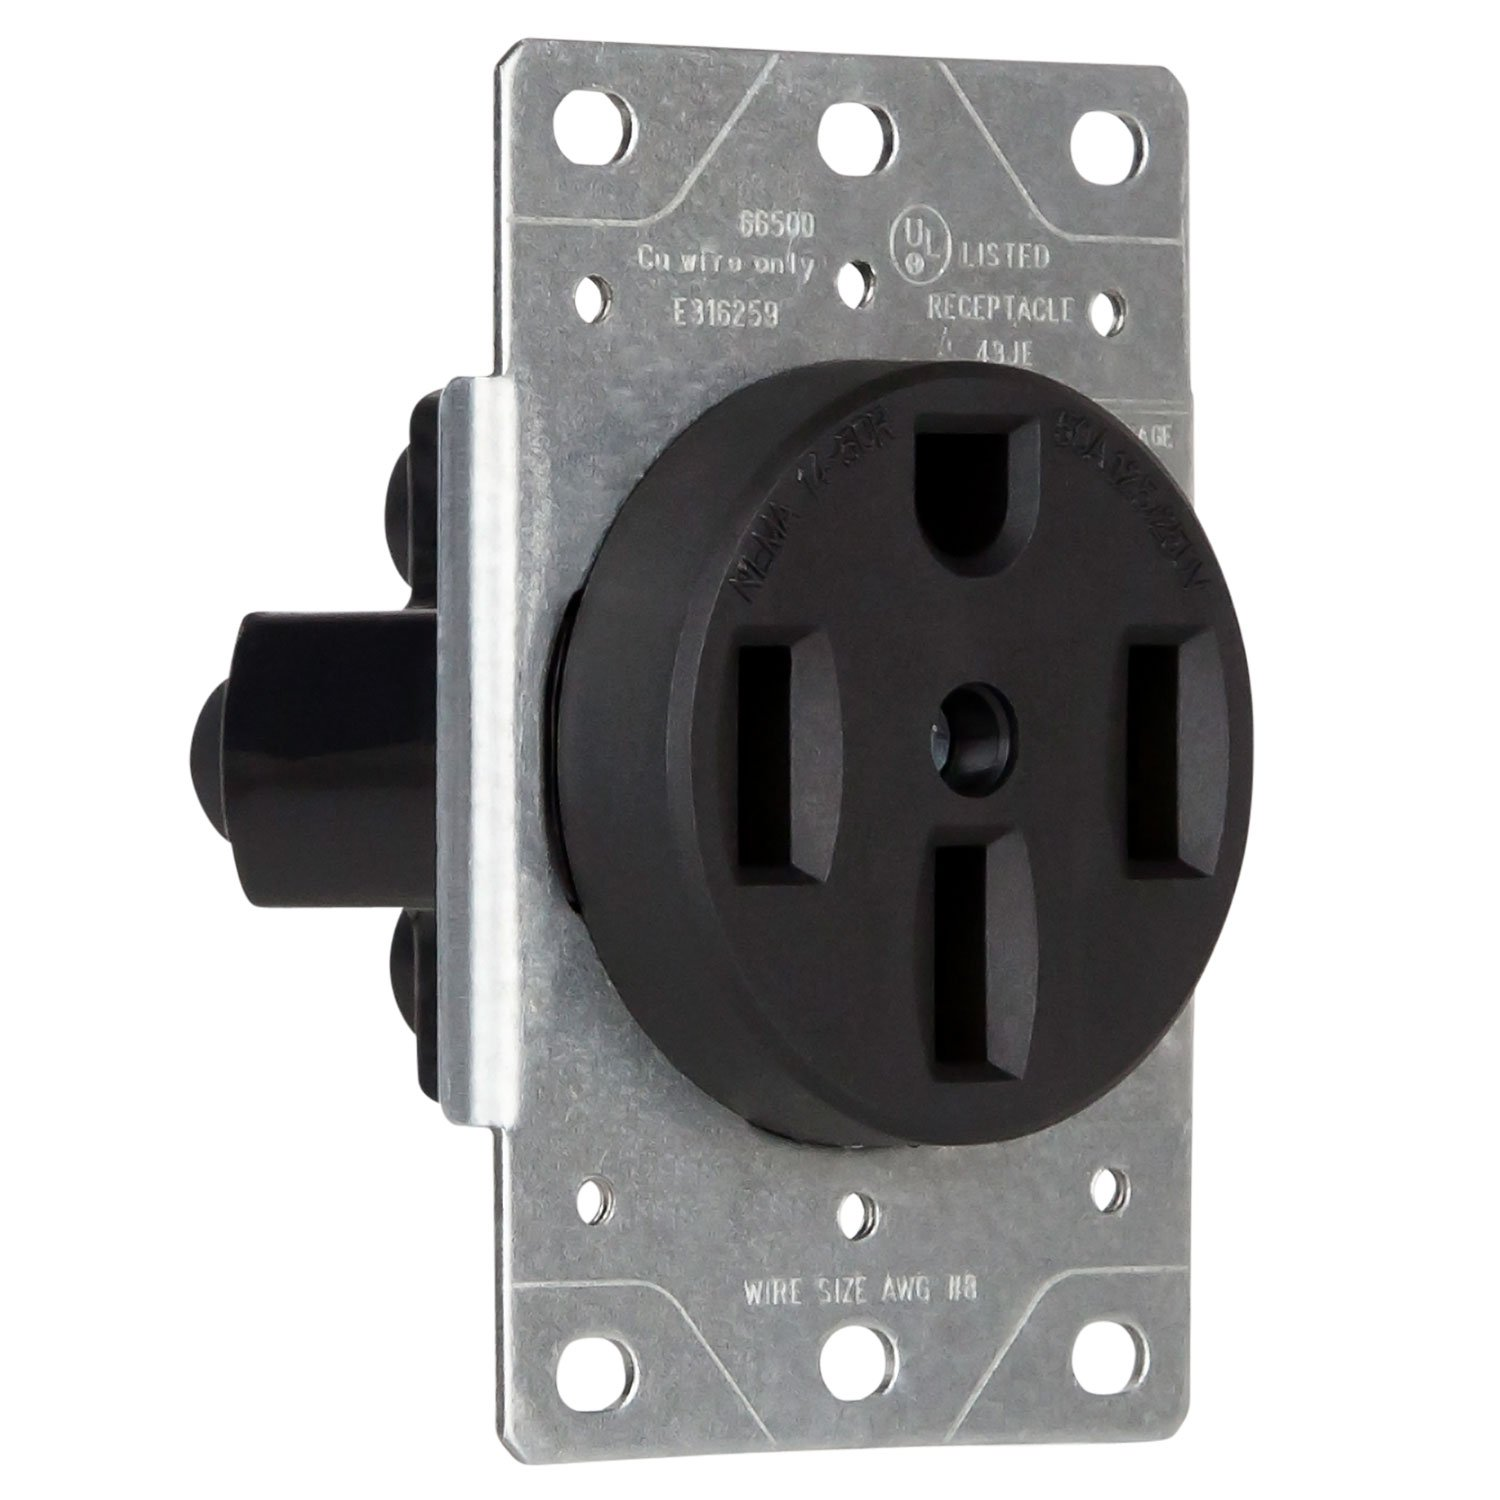 ENERLITES 50 Amp Outlet for Dryer/Stove/Oven/Range, Generator, RV, Electric Vehicles (Tesla, Toyota, Honda, Chevy) | 66500 NEMA 14-50R, Indoor/Outdoor, 125/250 Volt, 3P 4W, Female Plug, Black